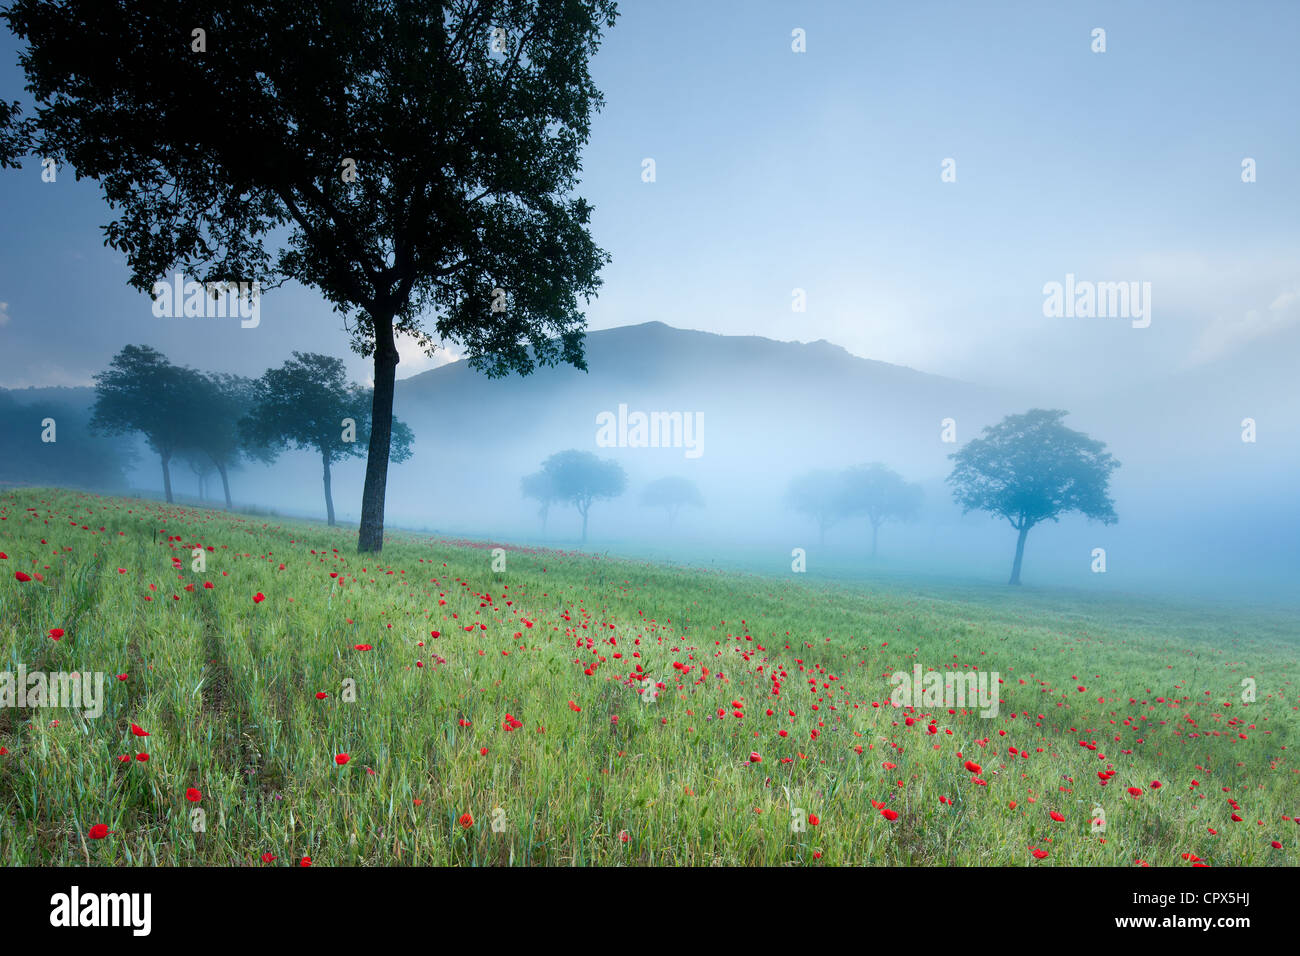 poppies in a field, nr Norcia, Umbria, Italy - Stock Image